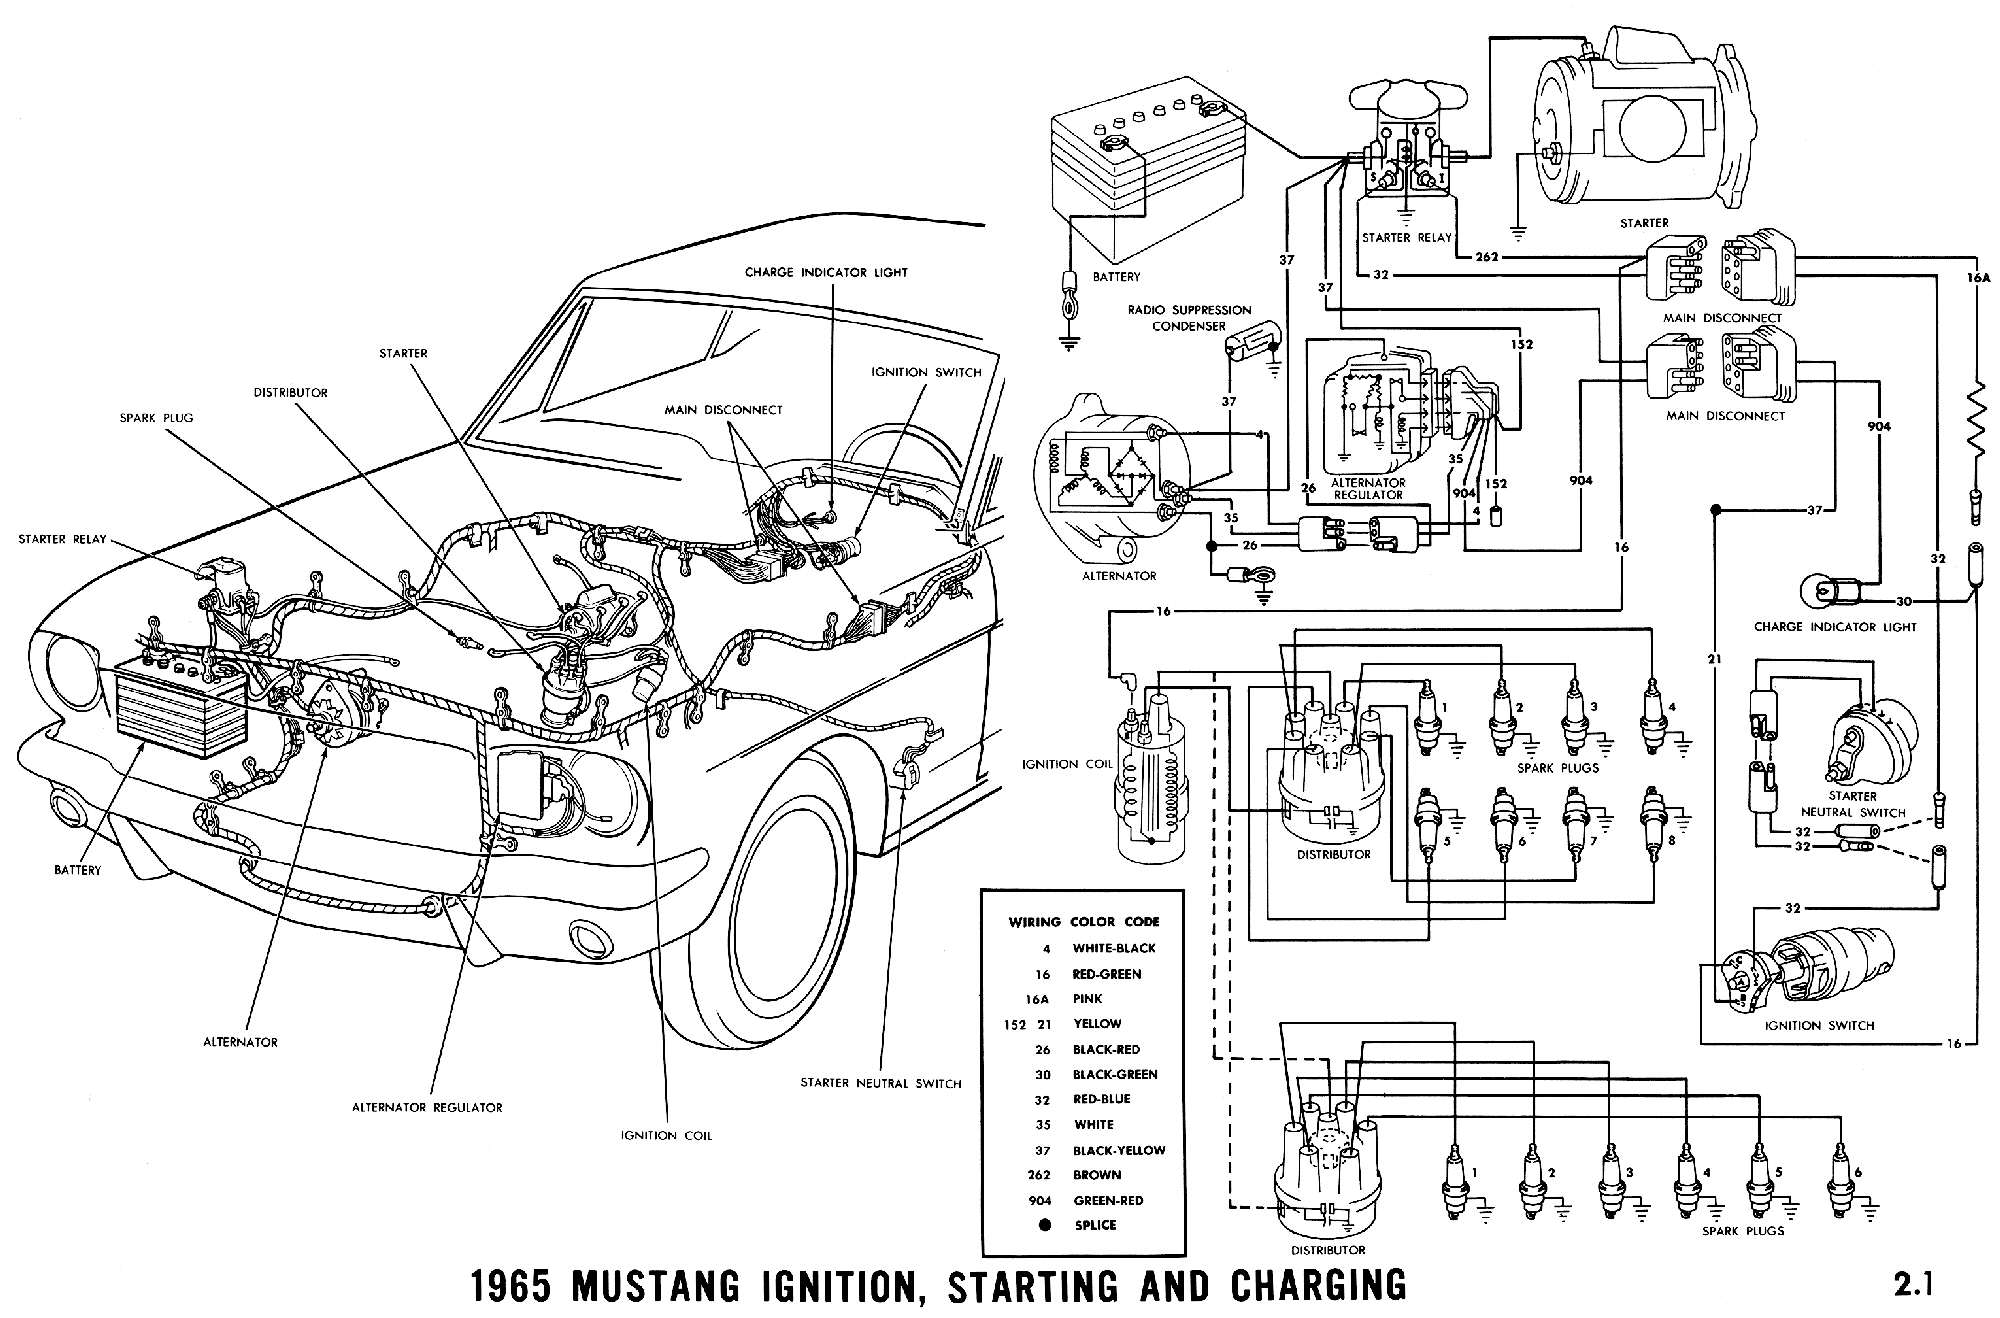 1965 Mustang Alt Warning Light Stays On on turn indicator wiring diagram